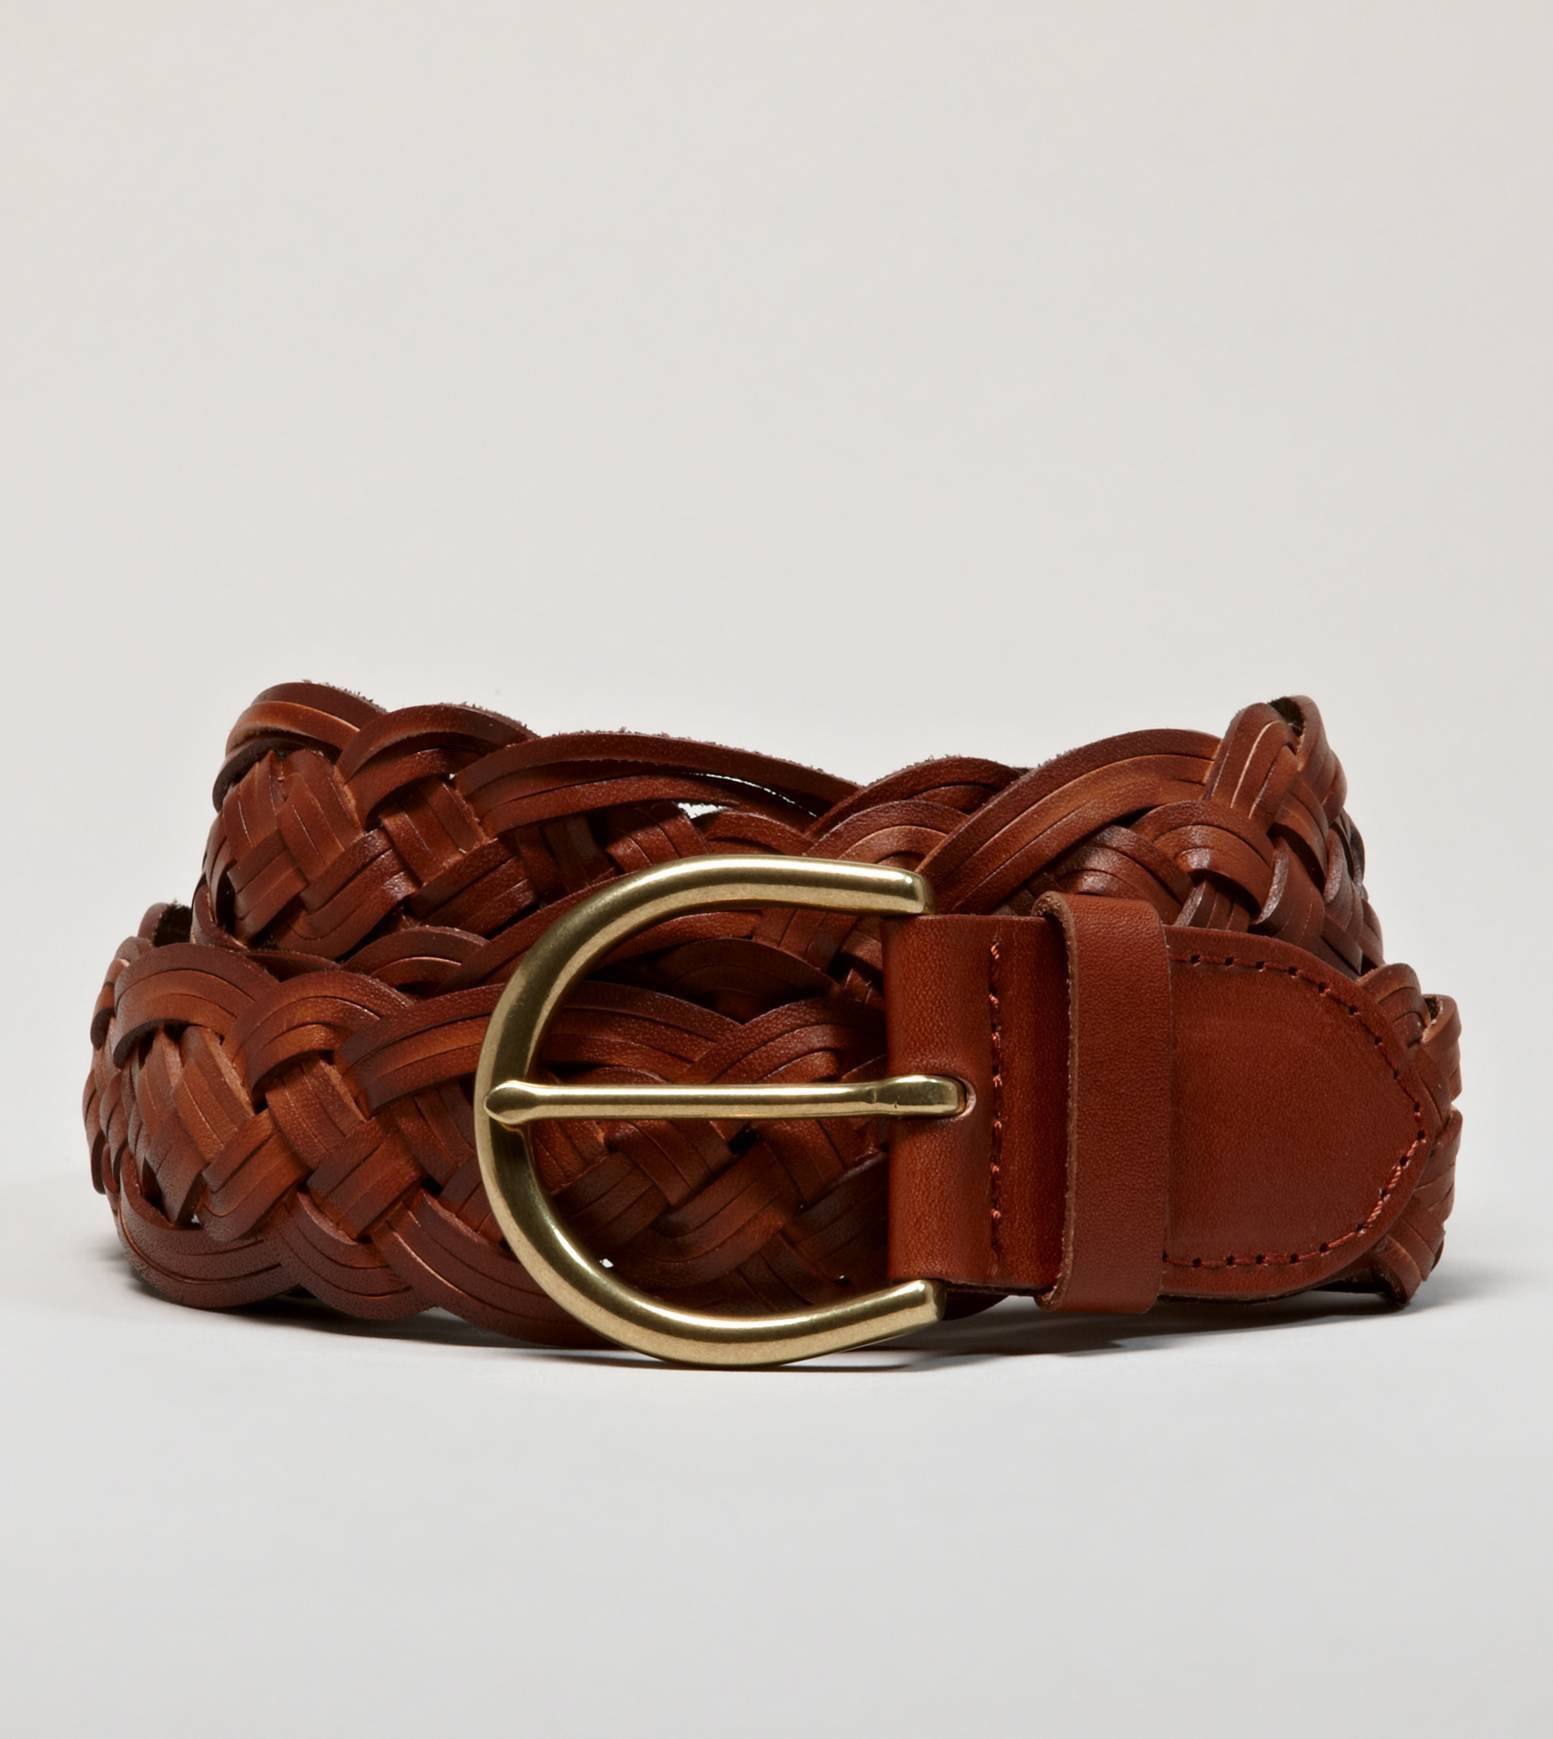 aeo braided leather belt american eagle from american eagle